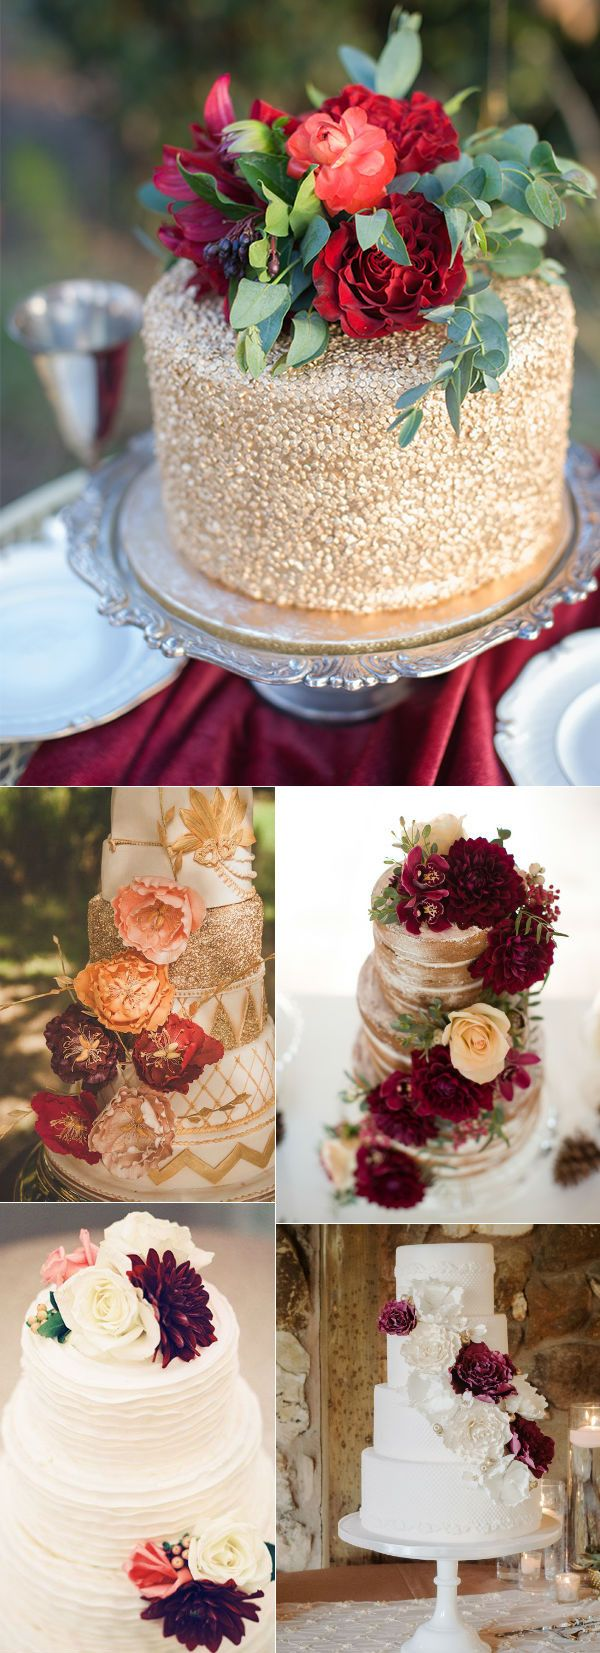 marsala fall wedding cake ideas